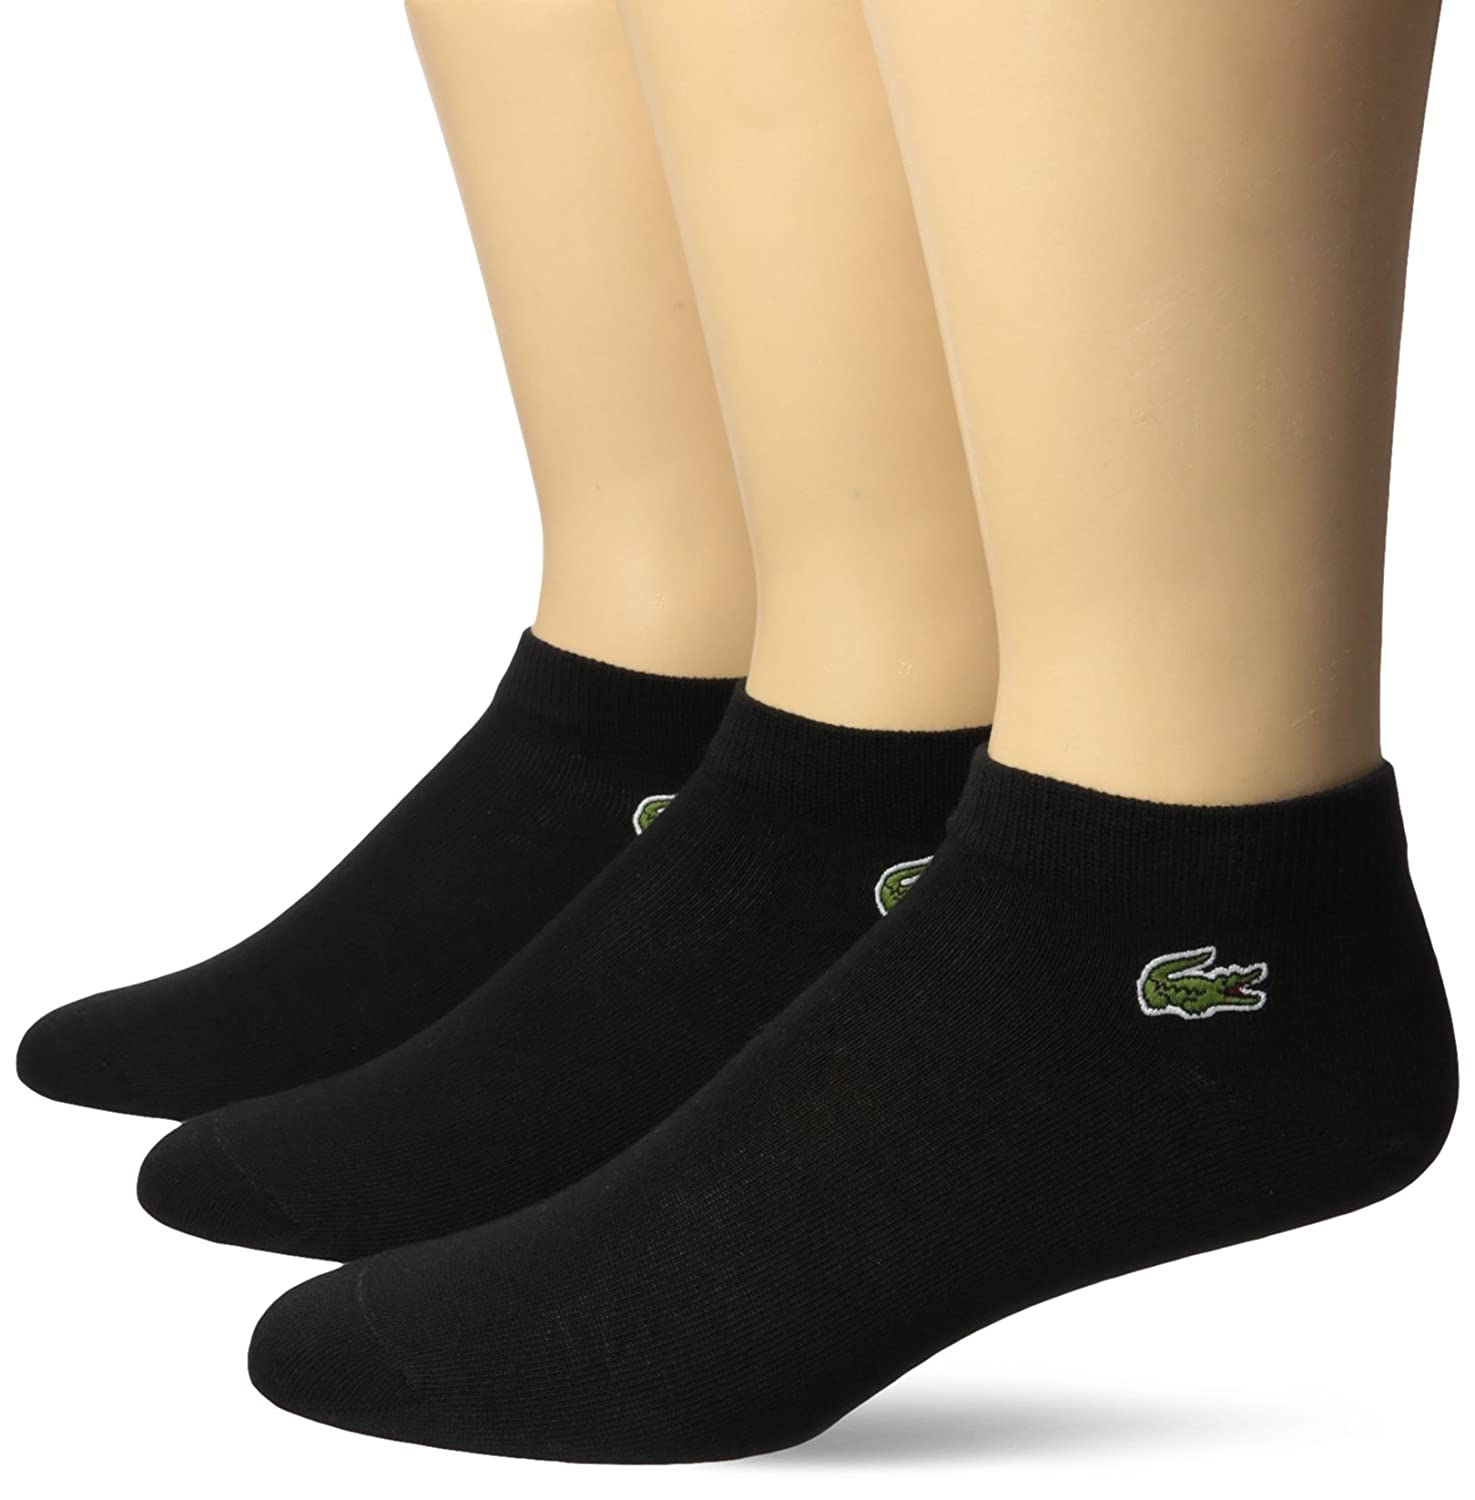 Lacoste Mens 3 Pack Jersey Ped Sock Ra1163